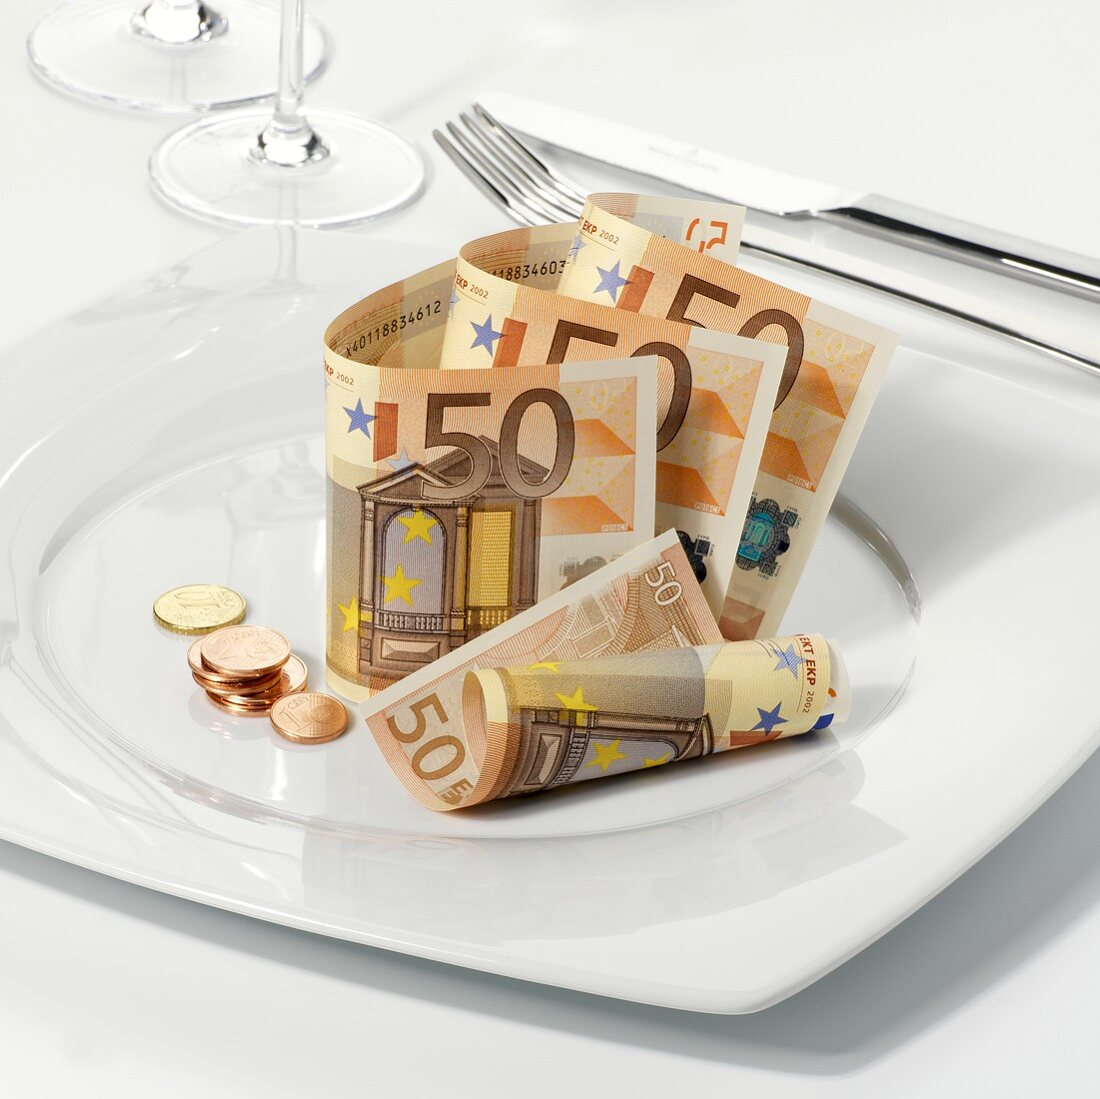 Euro notes and coins on plate